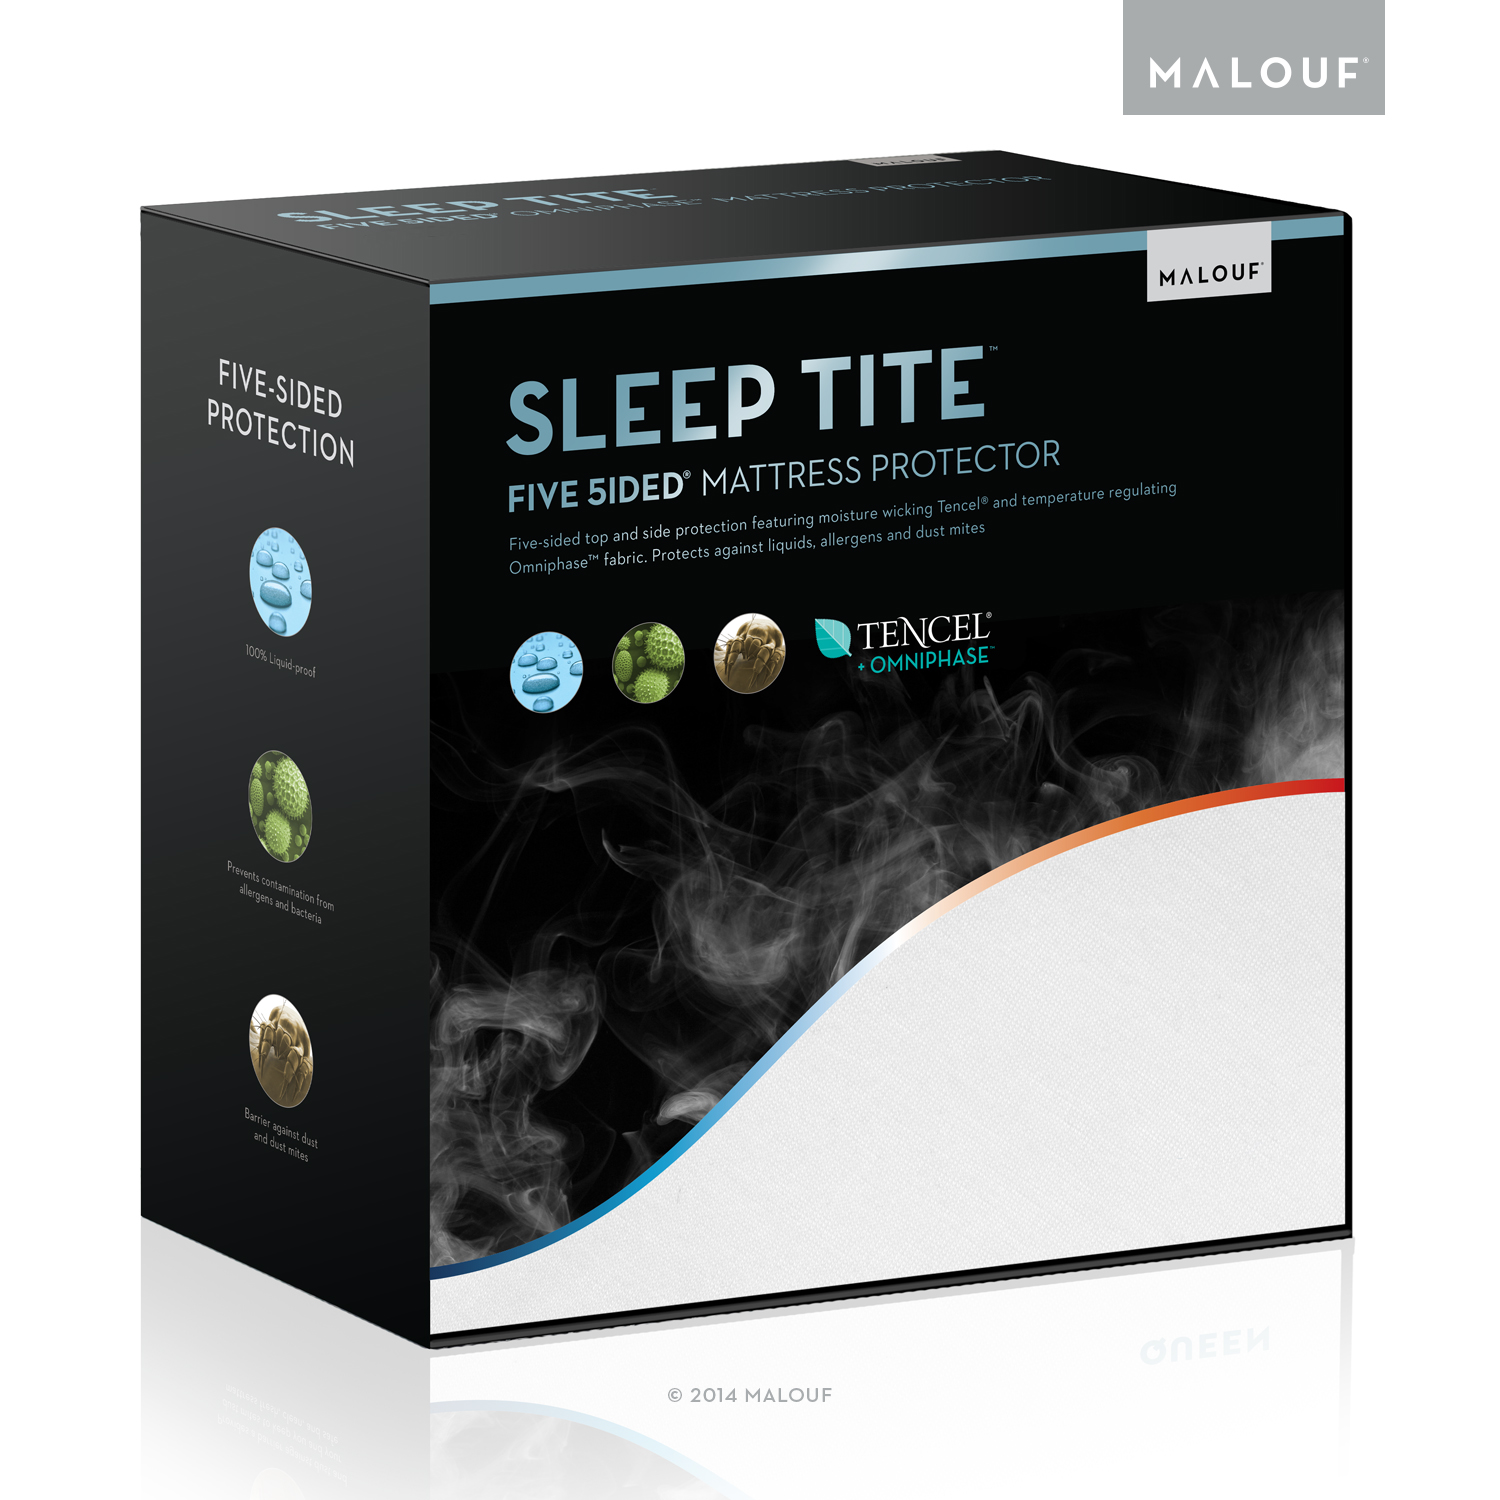 SLEEP TITE by Malouf FIVE-5IDED Mattress Protector With Omniphase and Tencel - 100% Waterproof - Regulates Temperature - 15-Year - Full XL